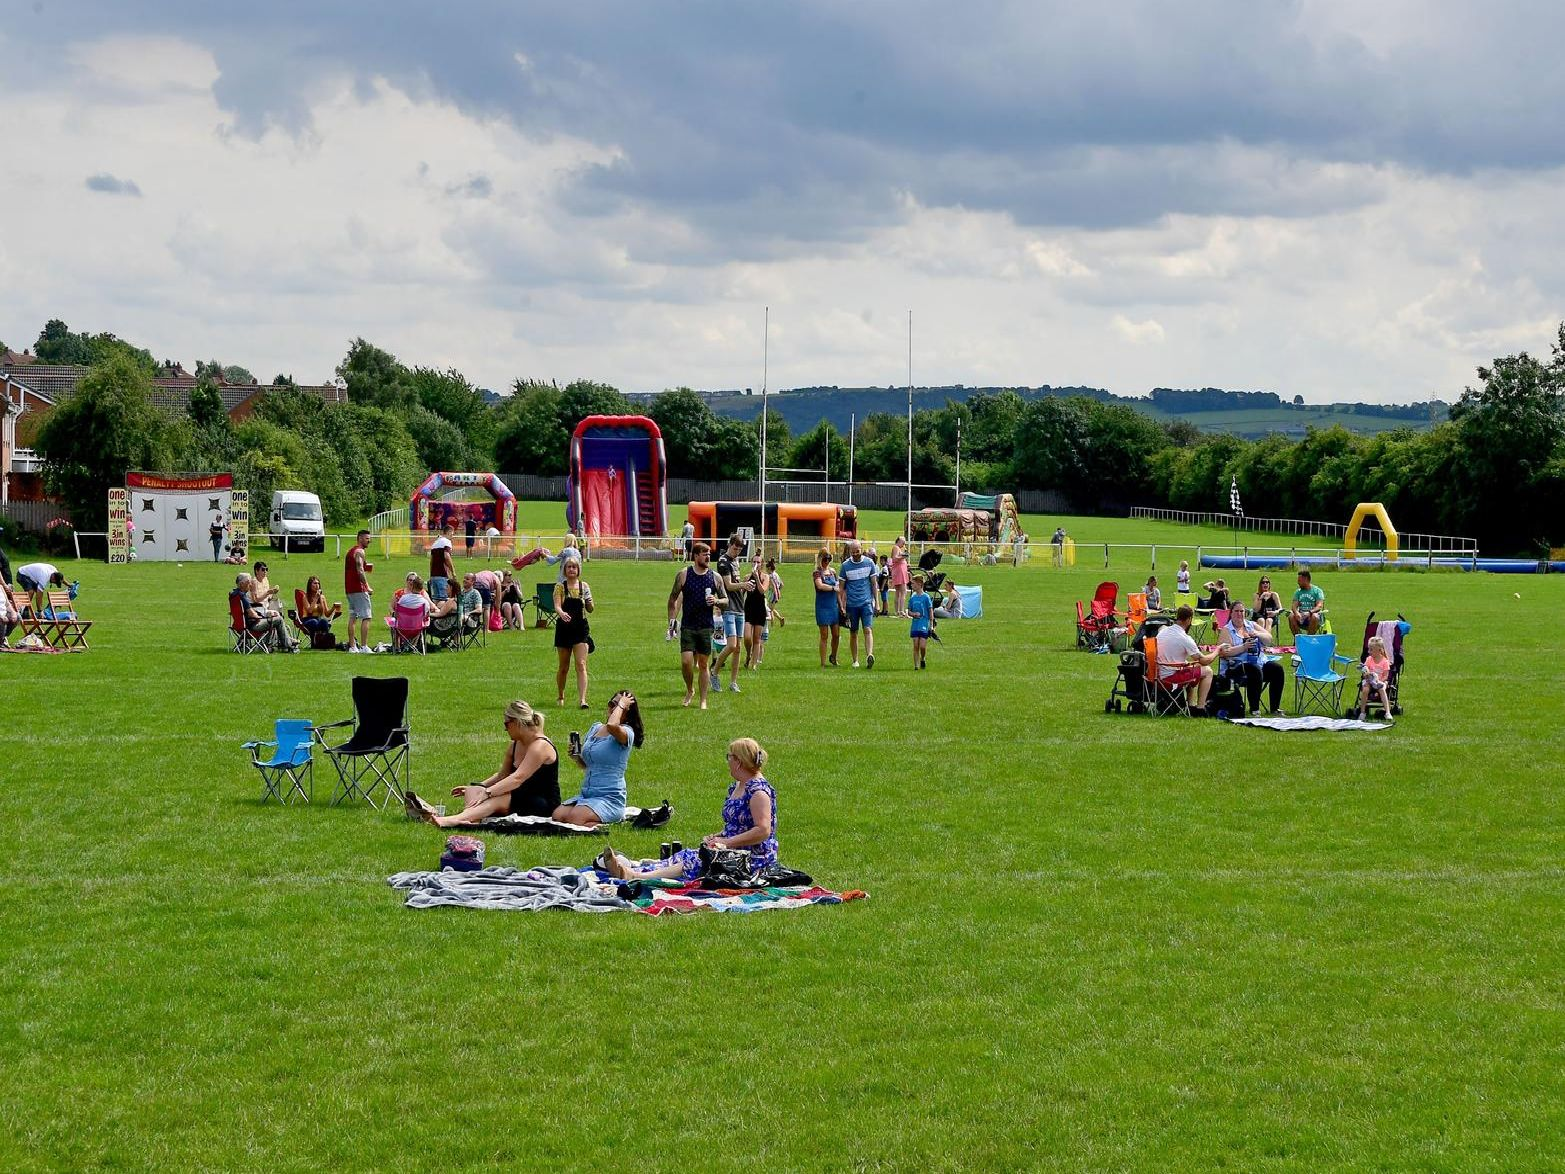 Some of the festival-goers enjoy a sit down before the music starts.